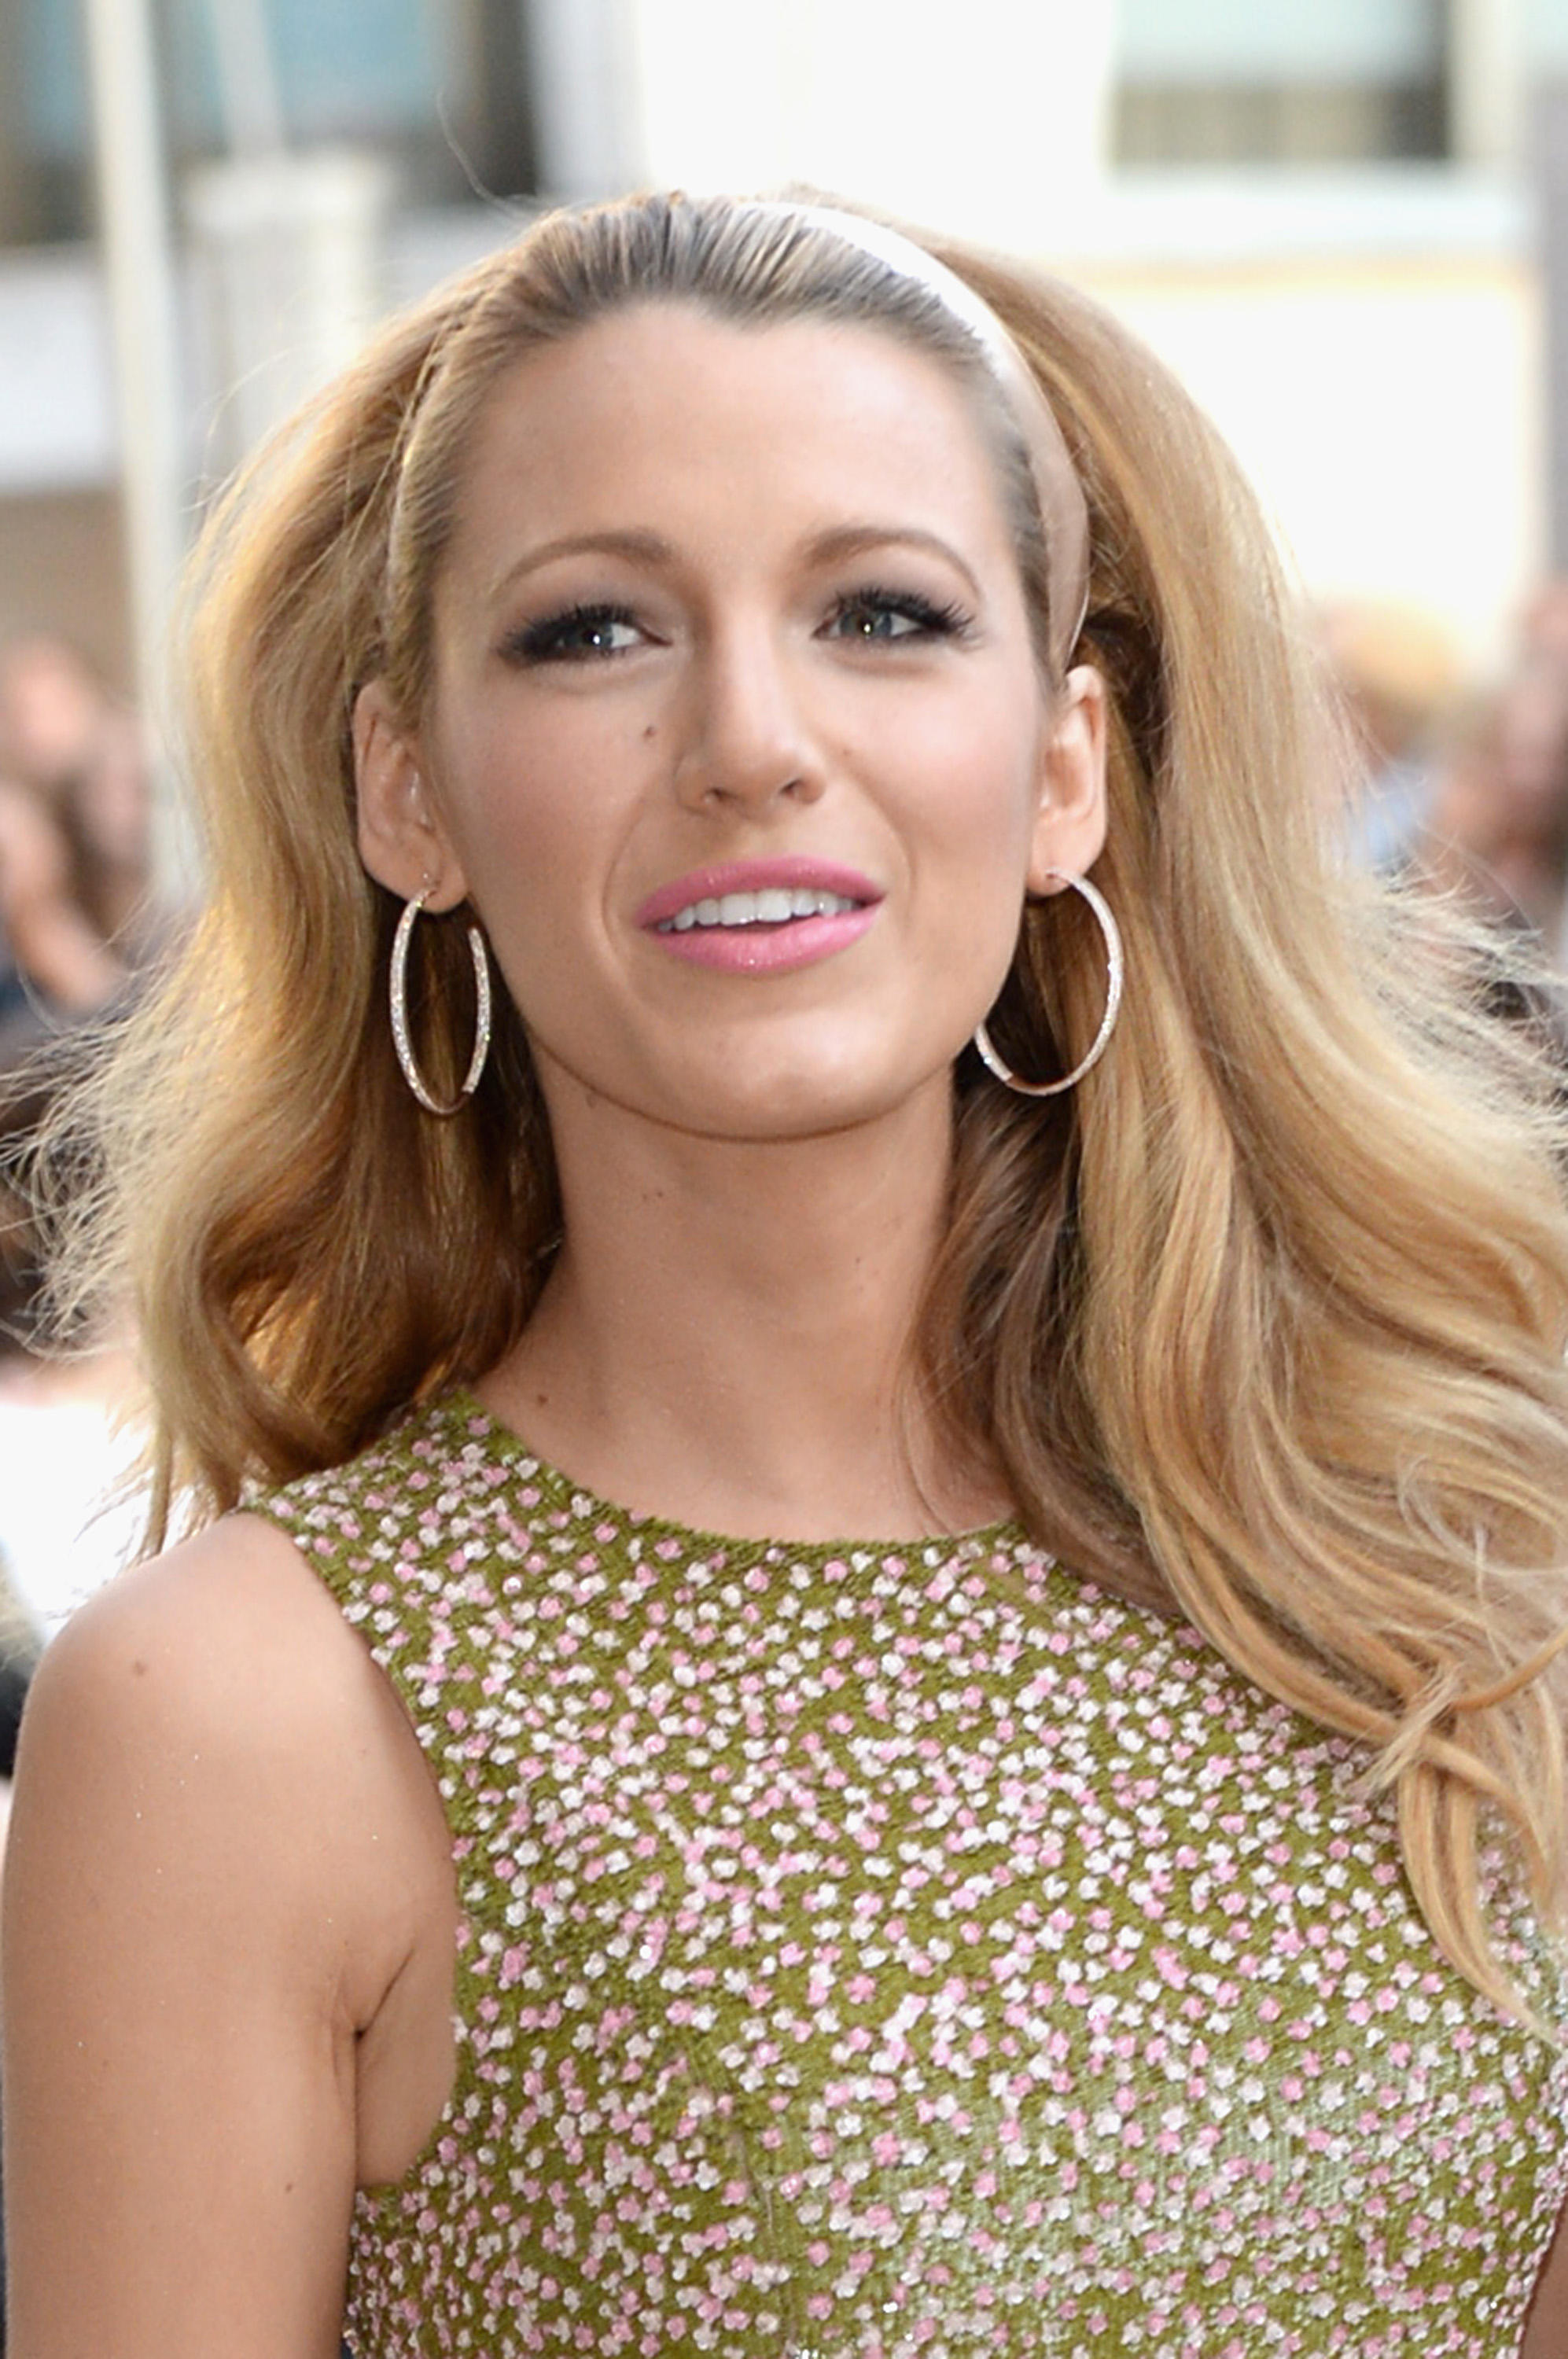 Forum on this topic: Blake Lively Shuts Preserve, But Knows Exactly , blake-lively-shuts-preserve-but-knows-exactly/